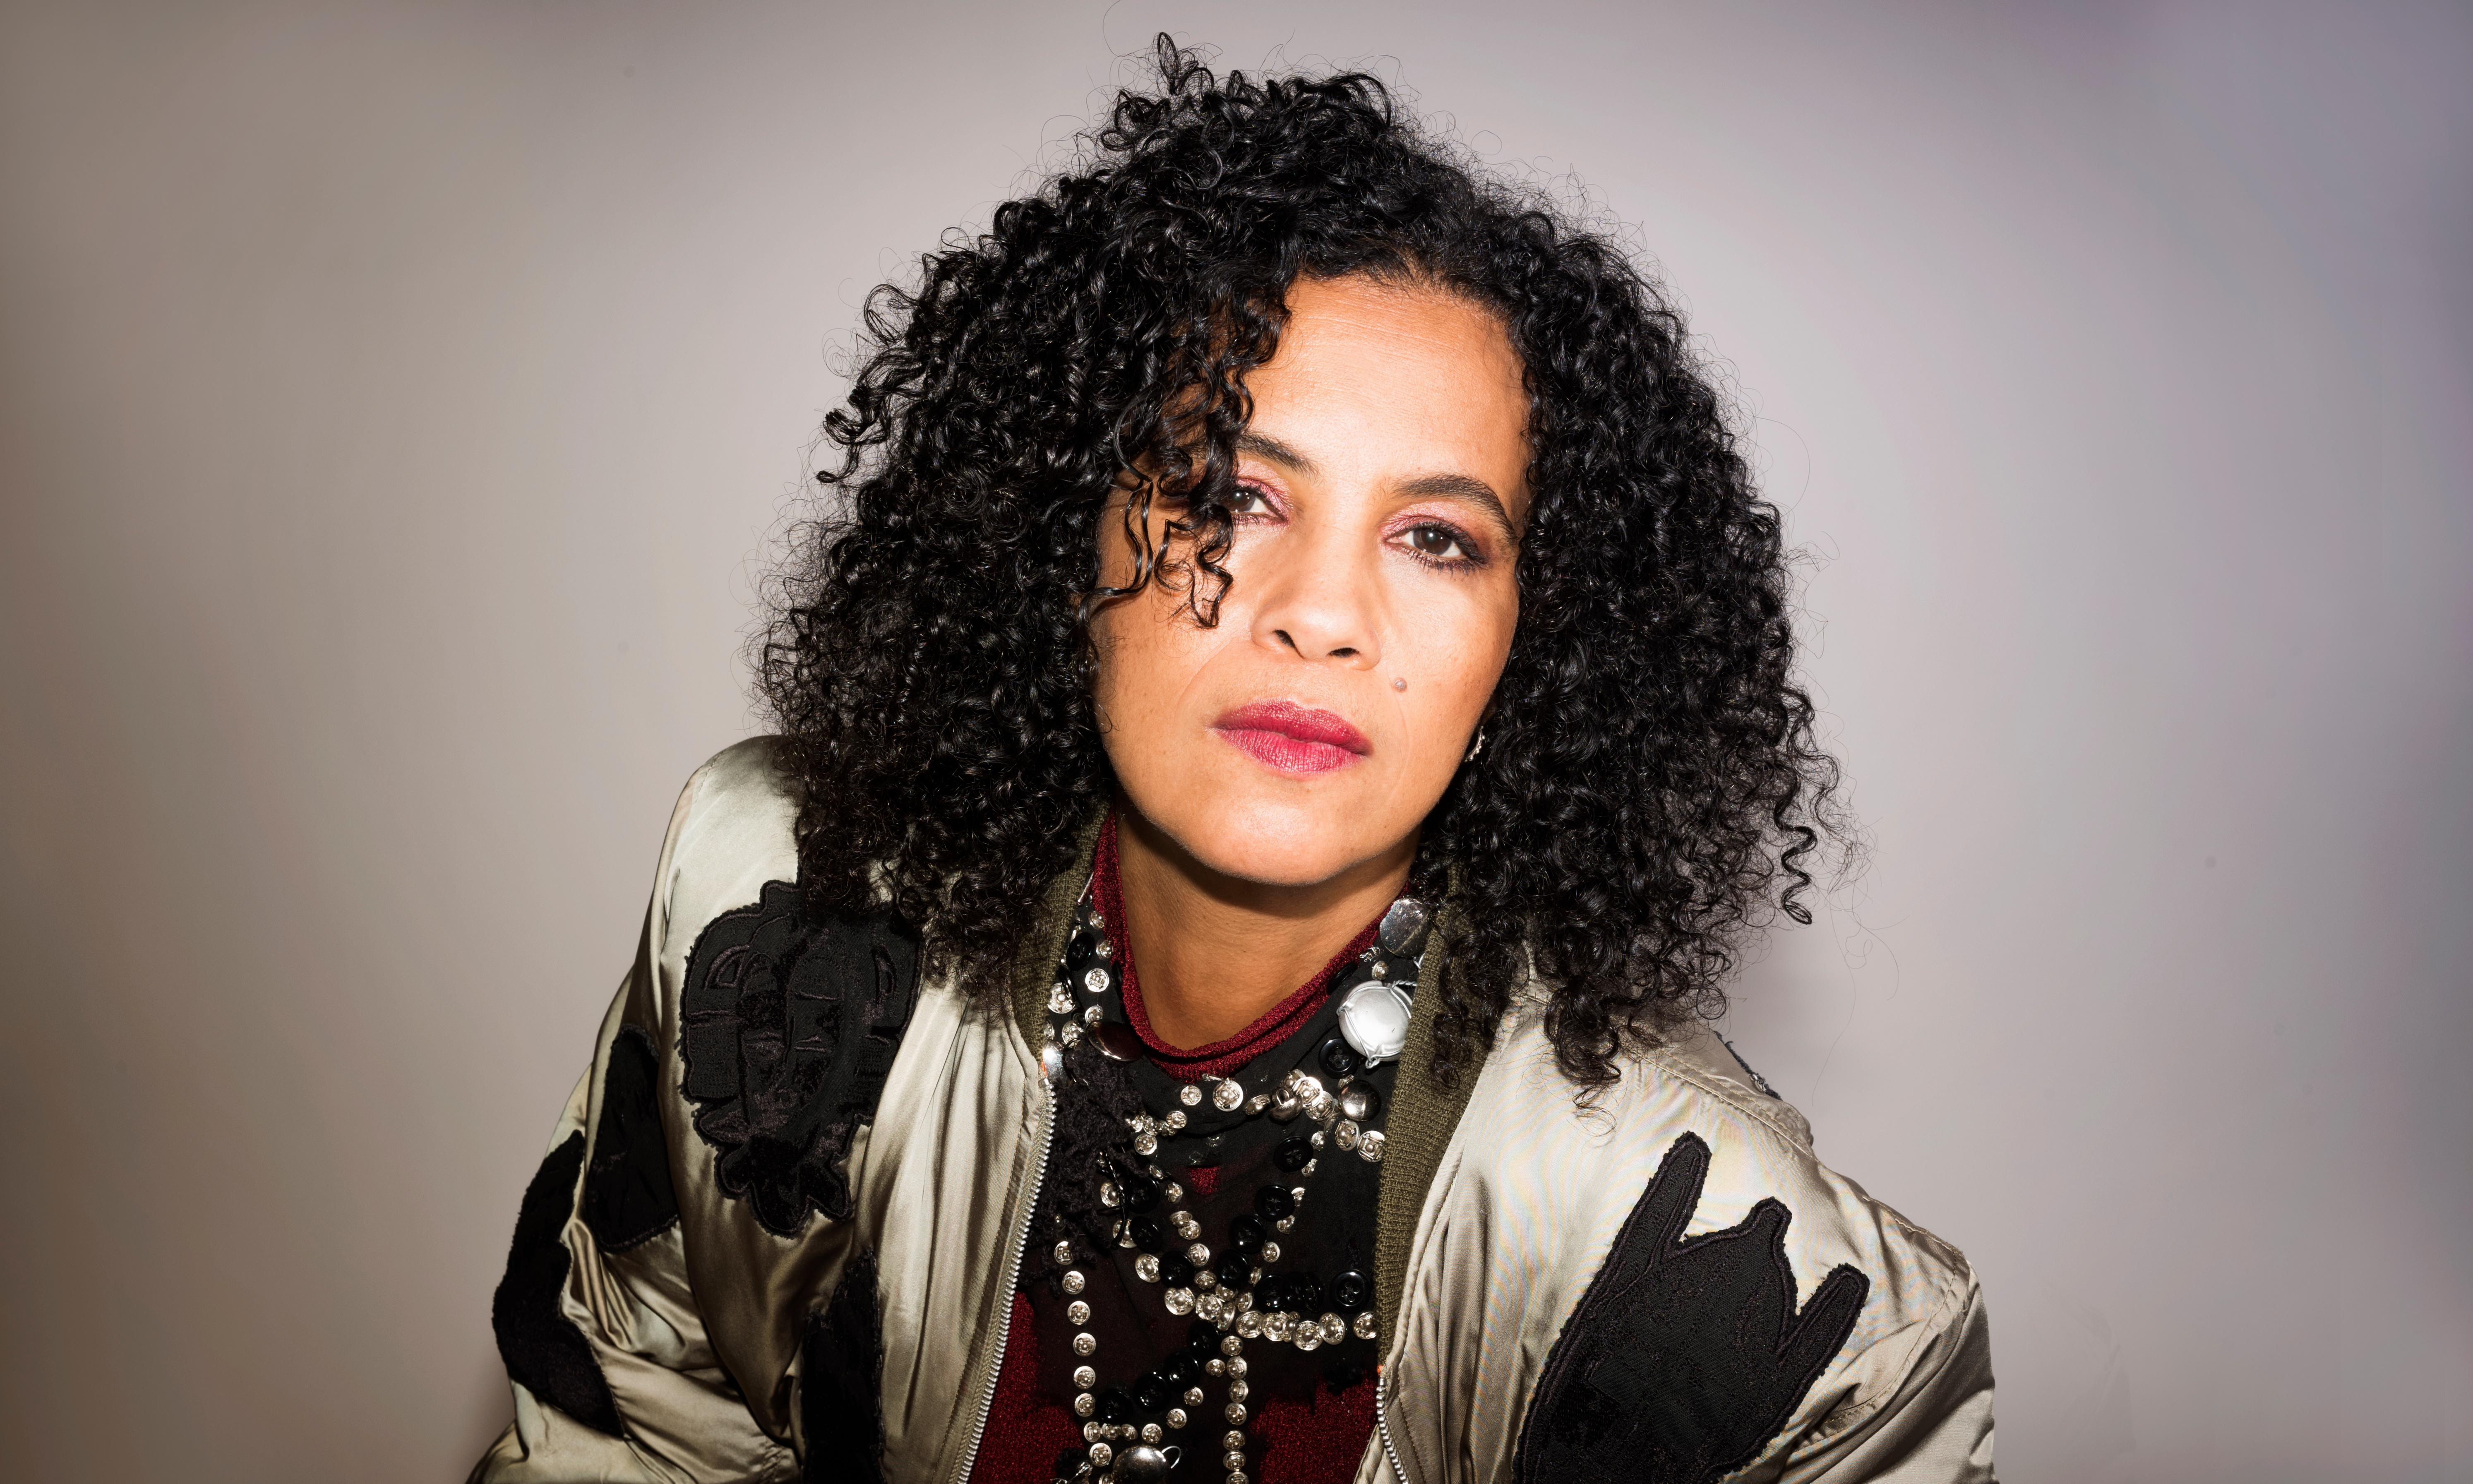 Neneh Cherry on Buffalo Stance, family ties and 'coke' for radio plays